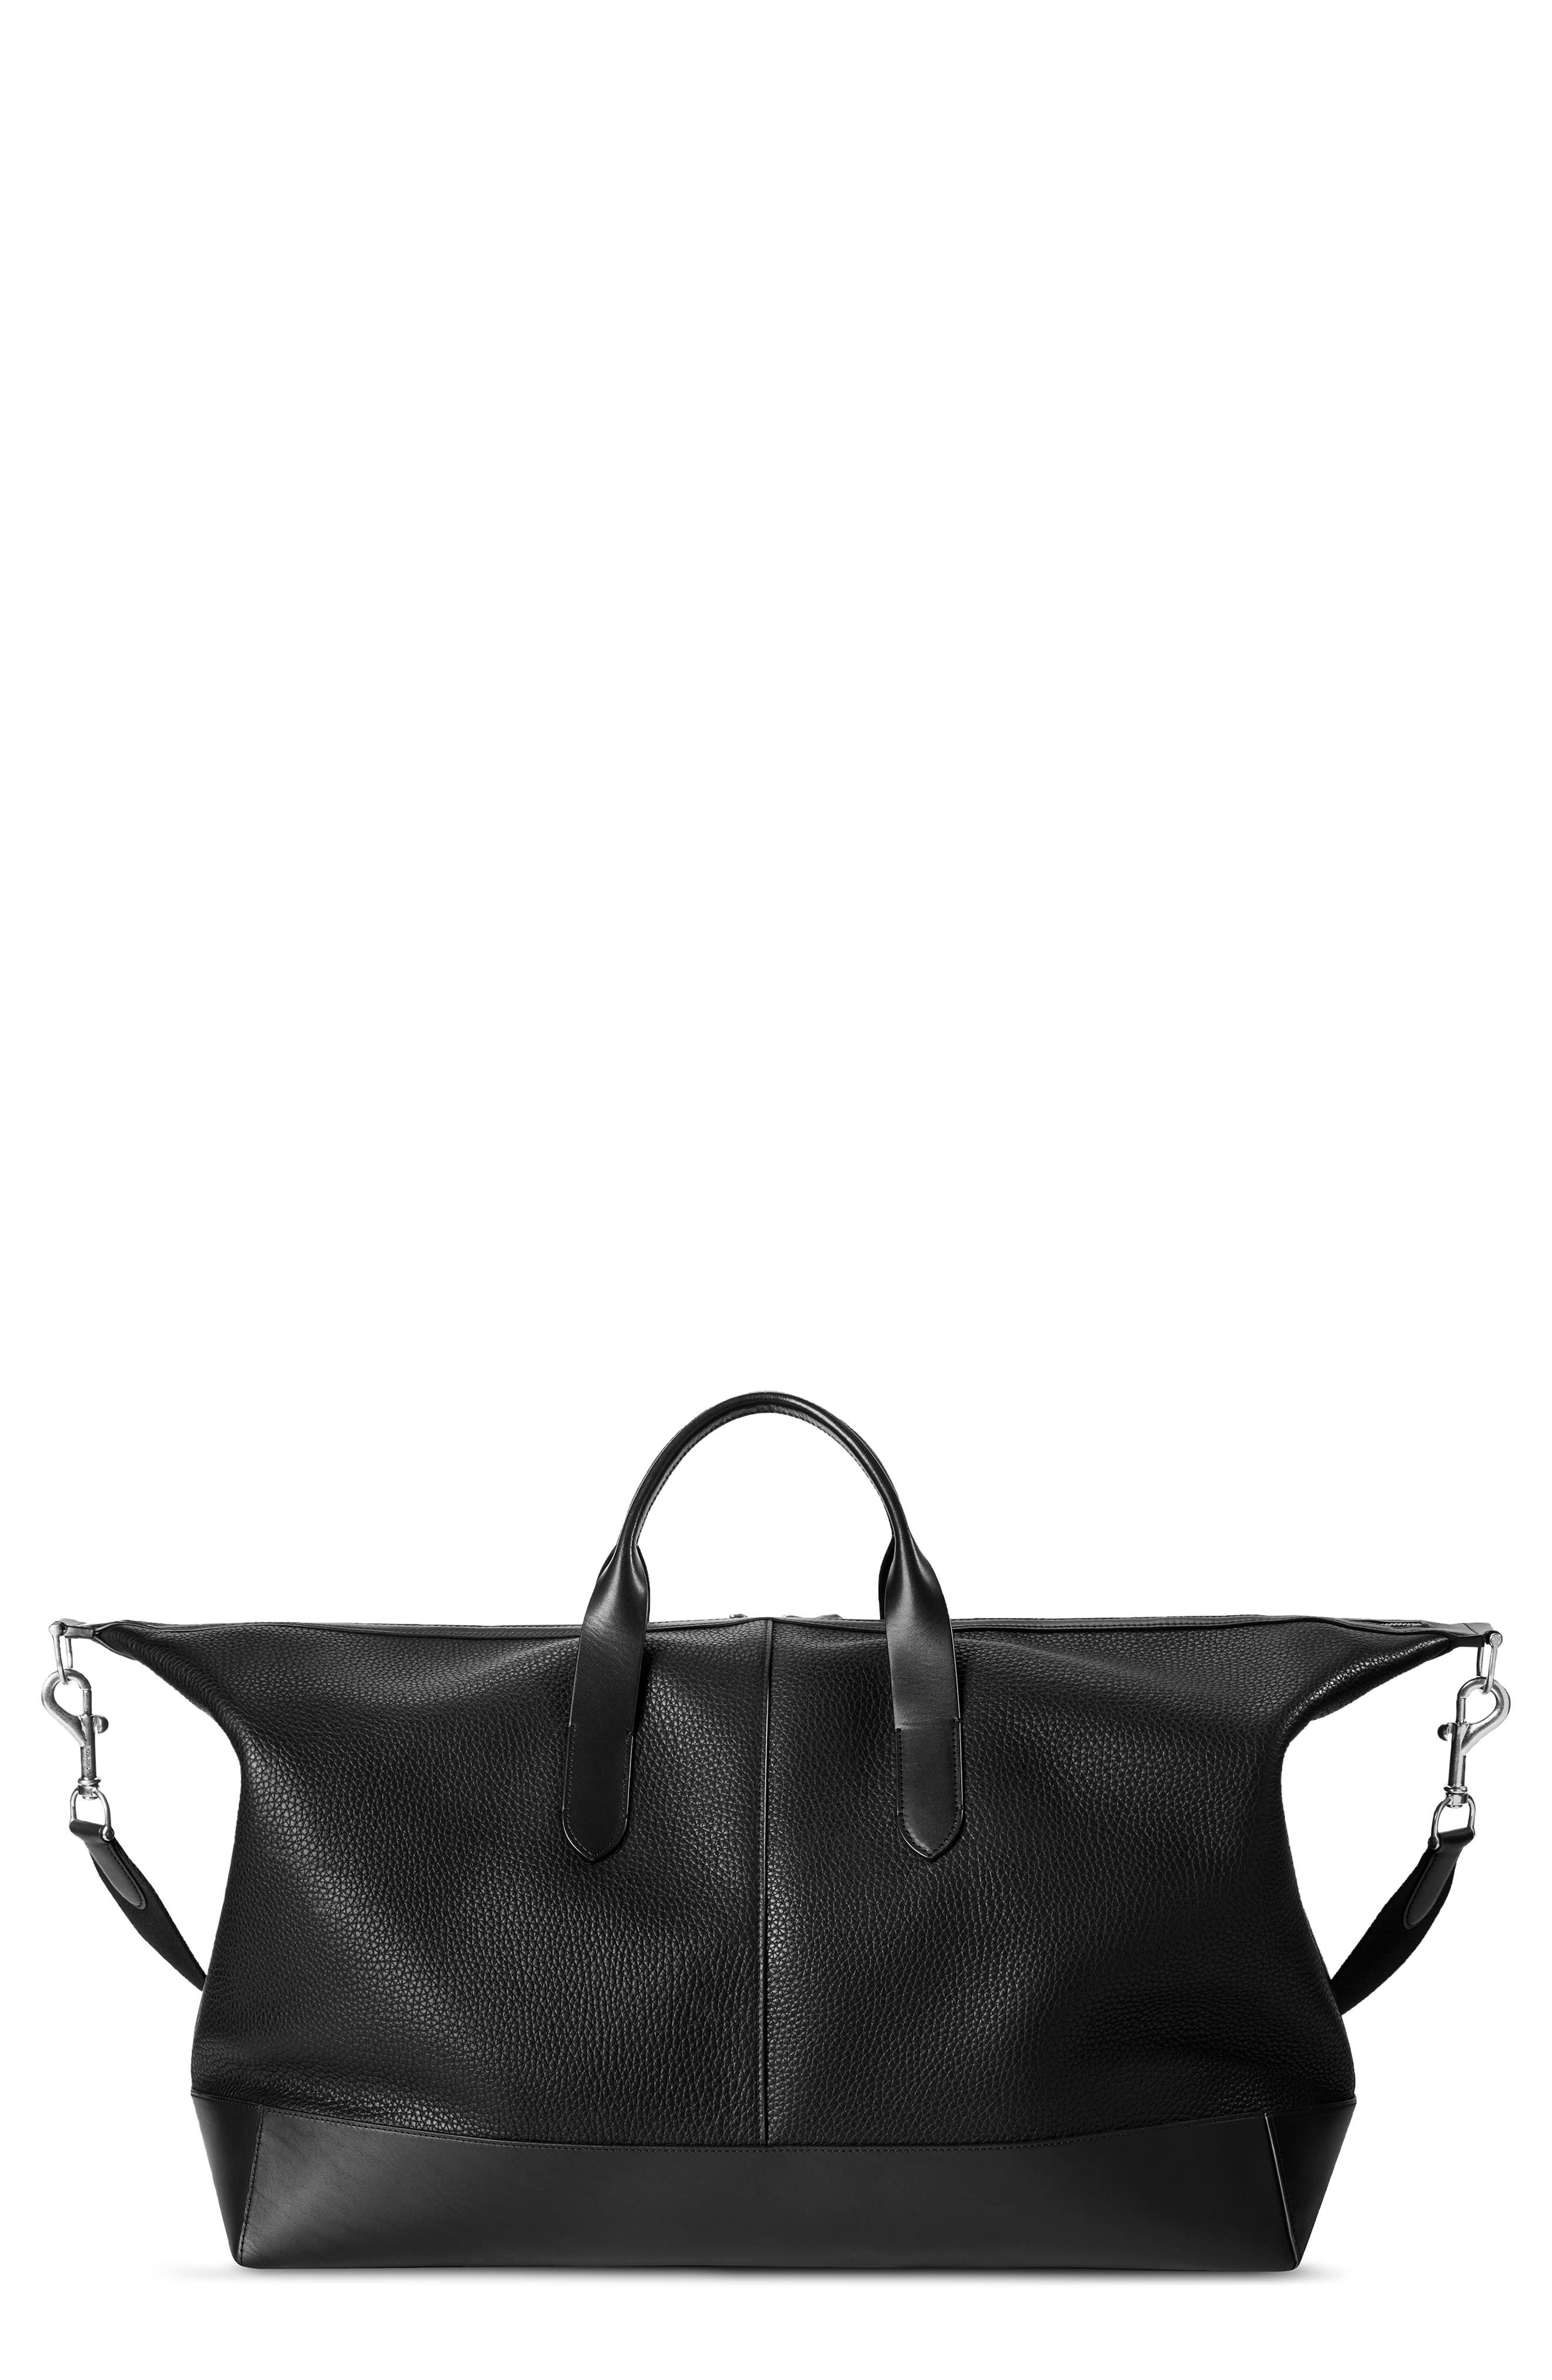 Canfield Classic Leather Duffle Bag